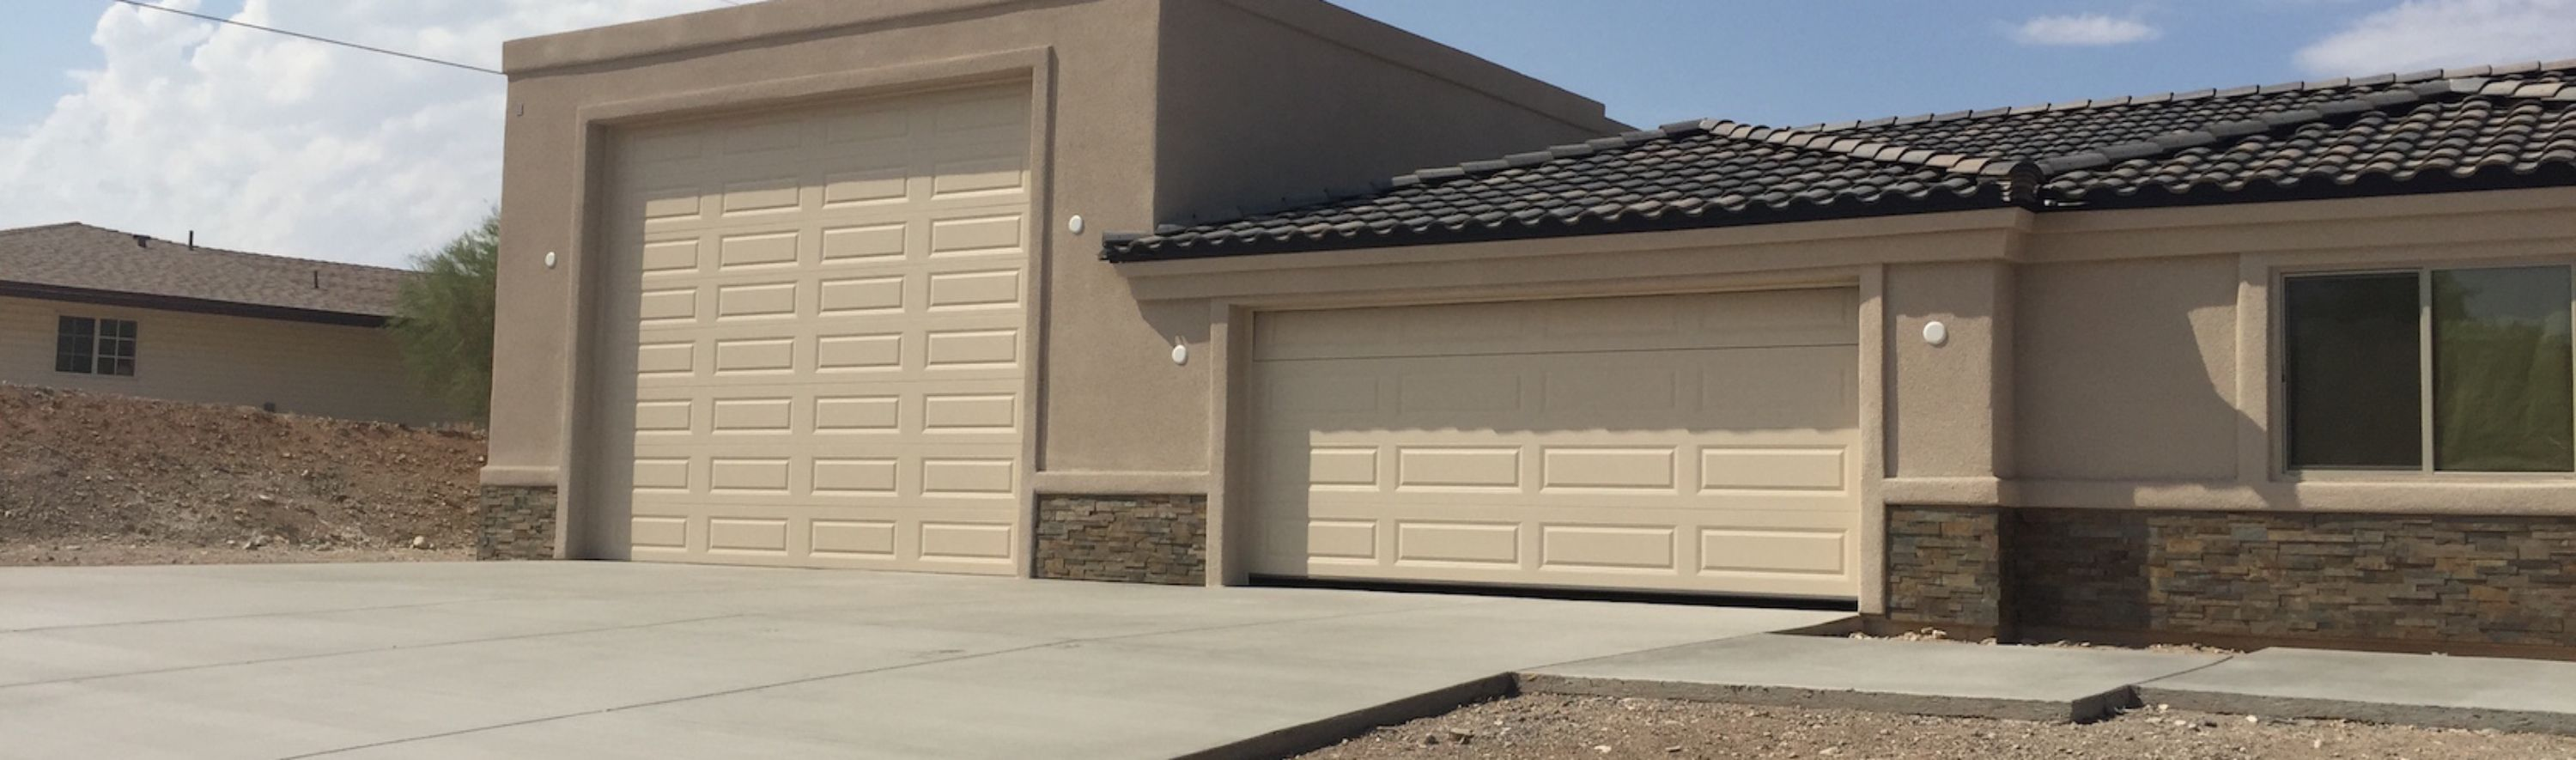 Garage Door Repair U0026 Service Lake Havasu City AZ